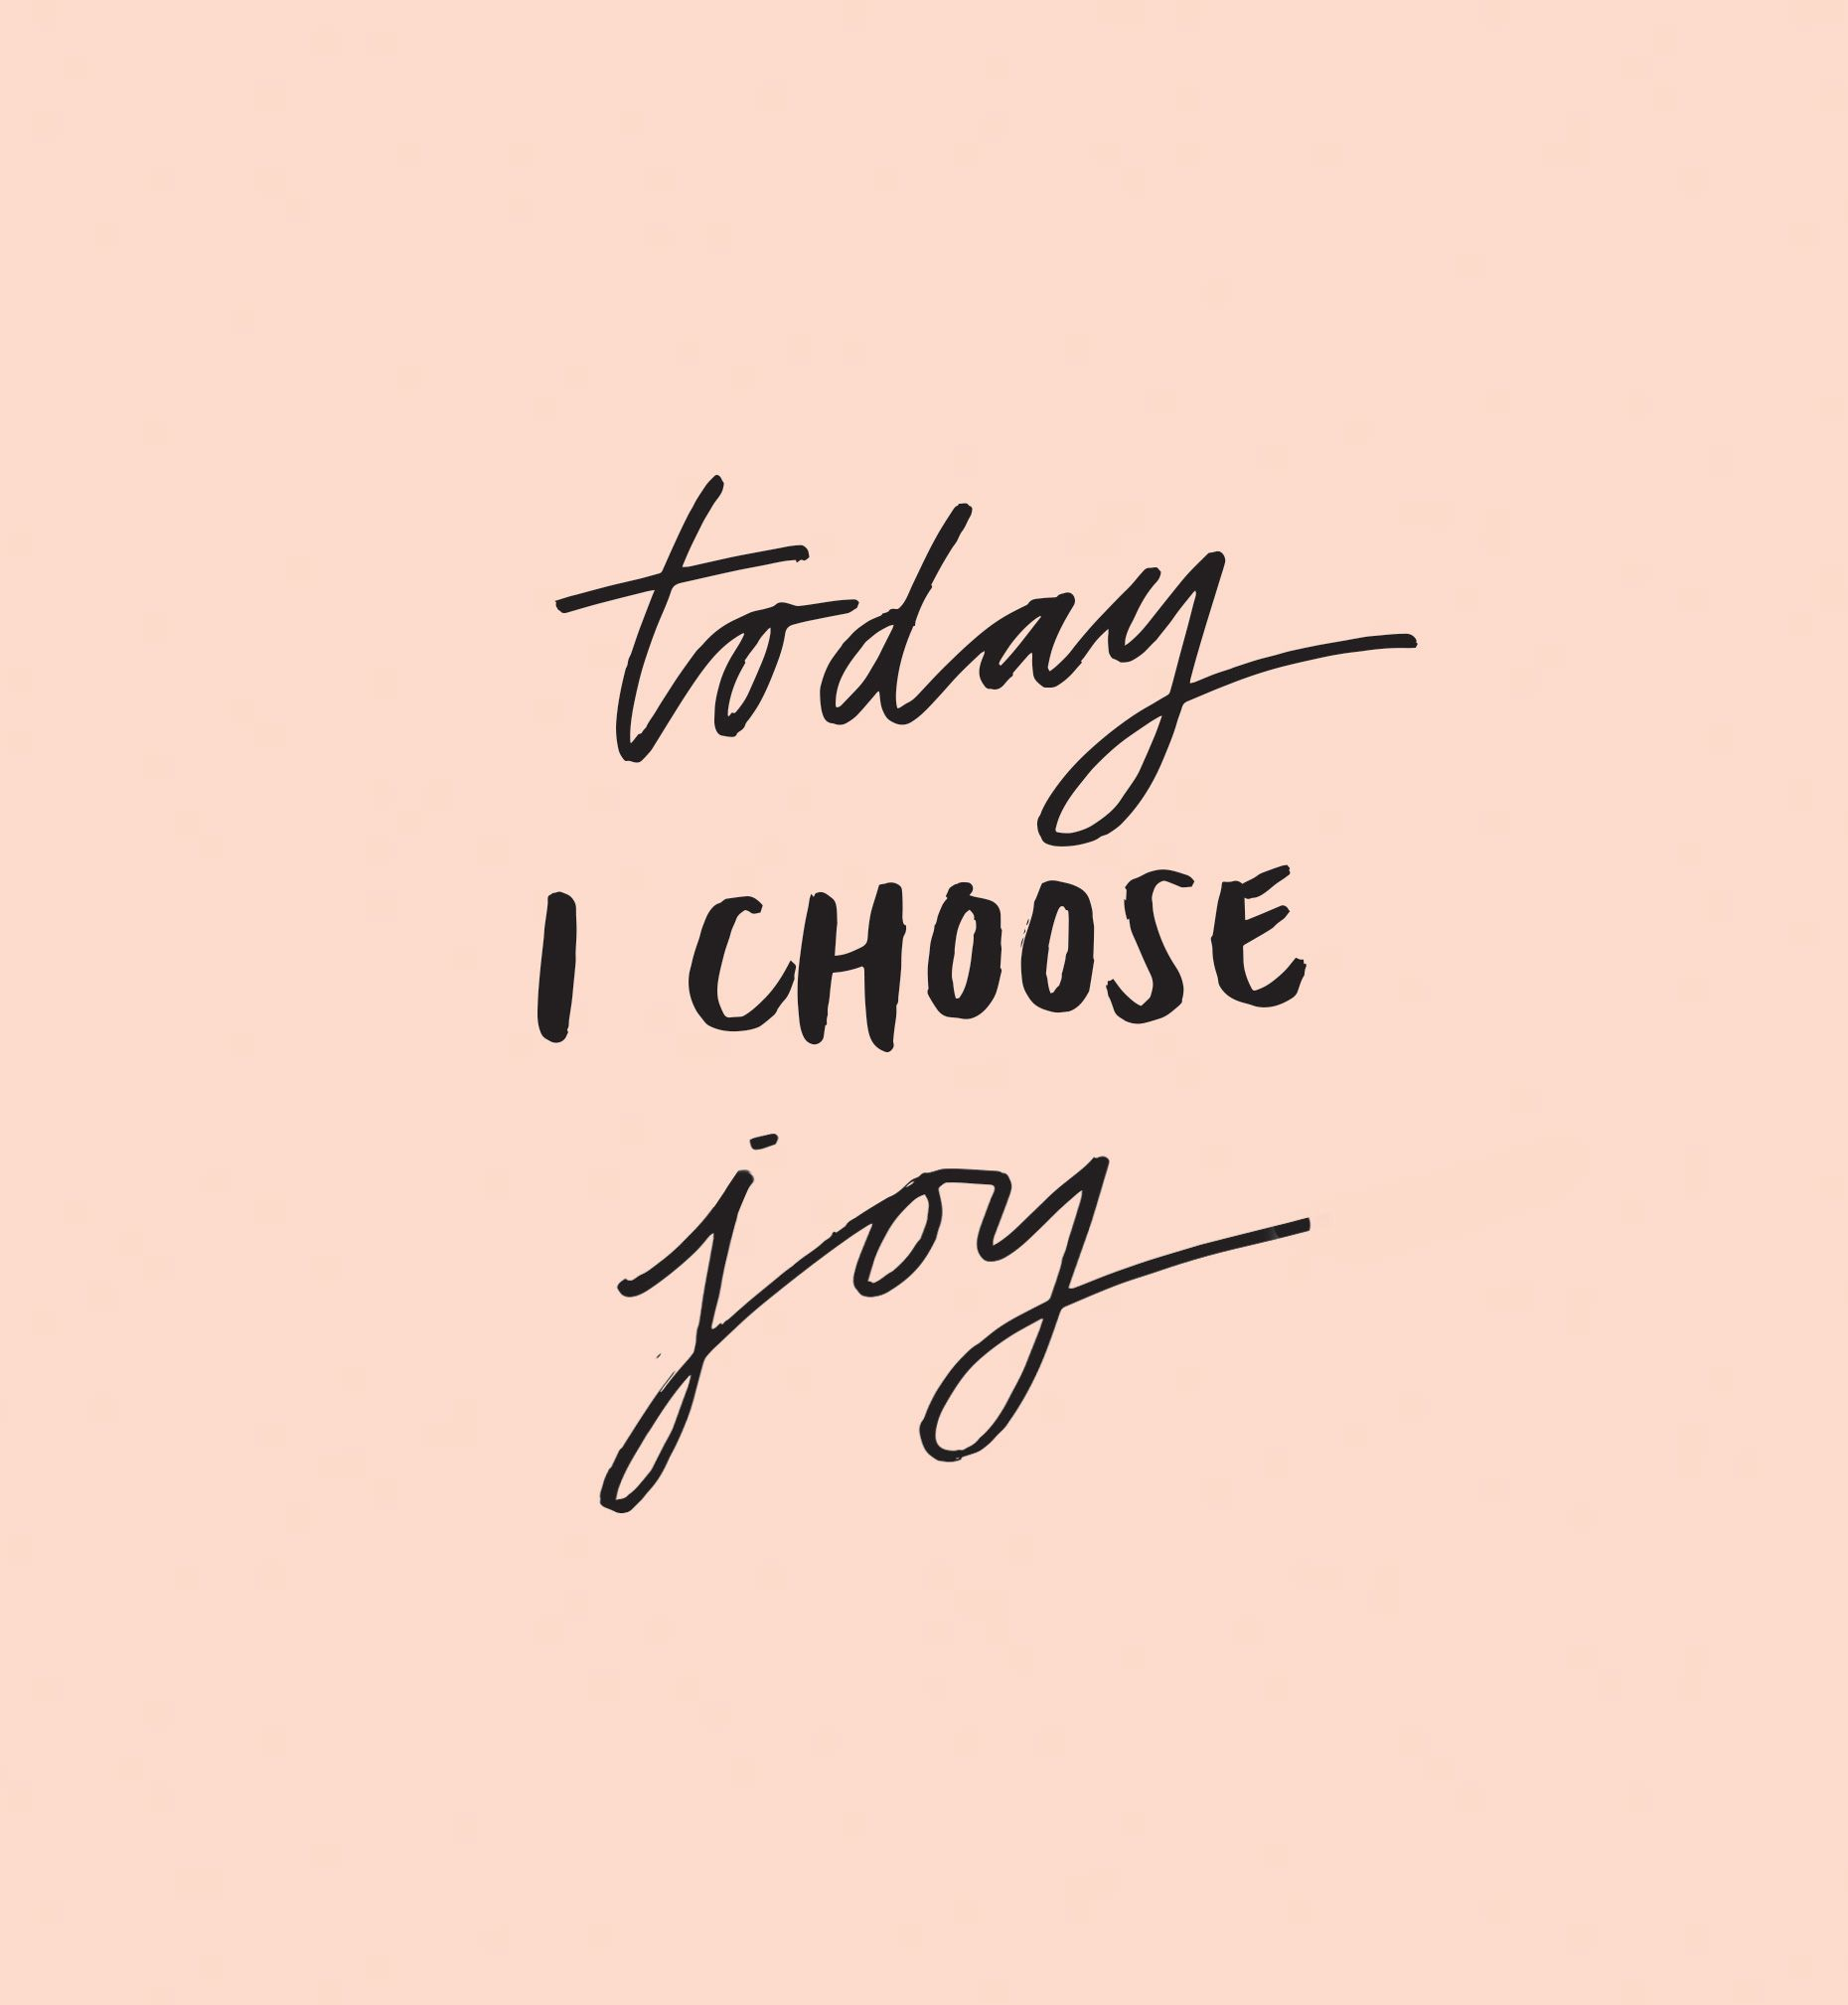 Quote For Today About Happiness Today I Choose Joy  Via Julia Kostreva  Calligraphy  Pinterest